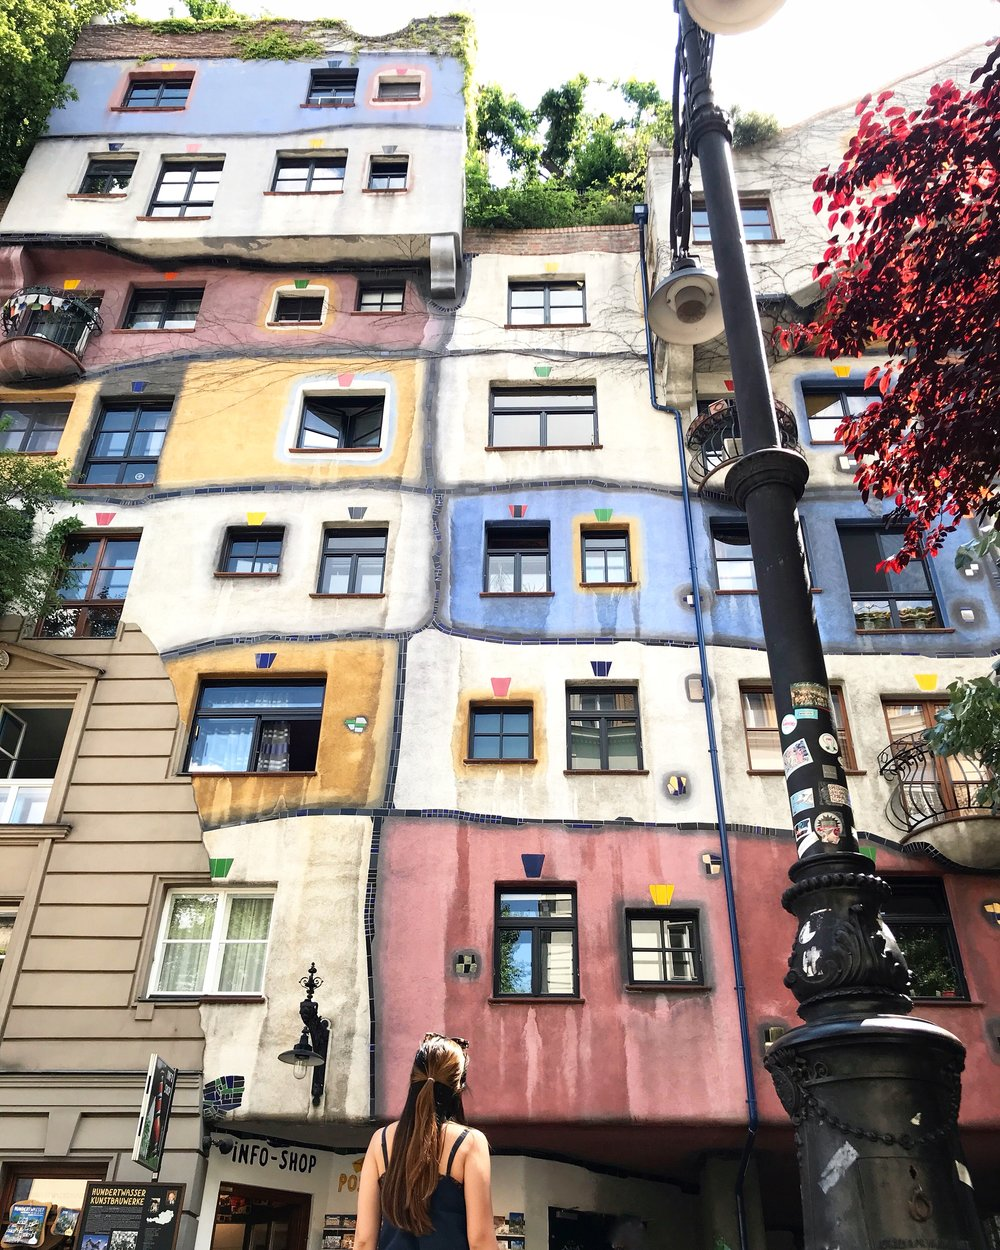 Checking out the Hundertwasserhaus located on Kegelgasse 36-38, 1030 Wien, Austria